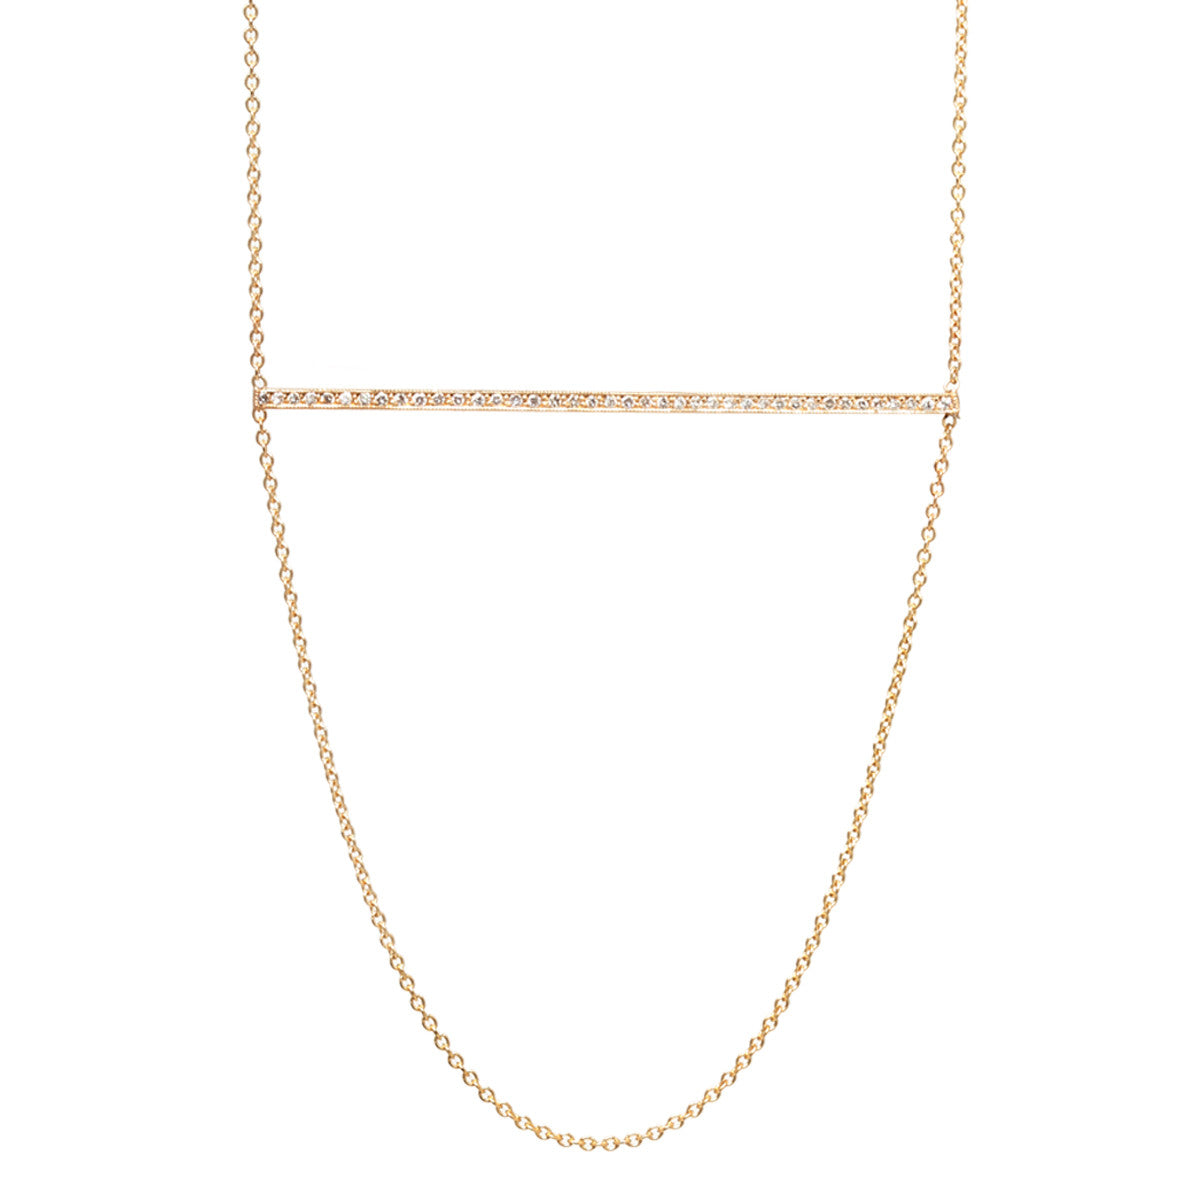 14k pave bar and chain necklace